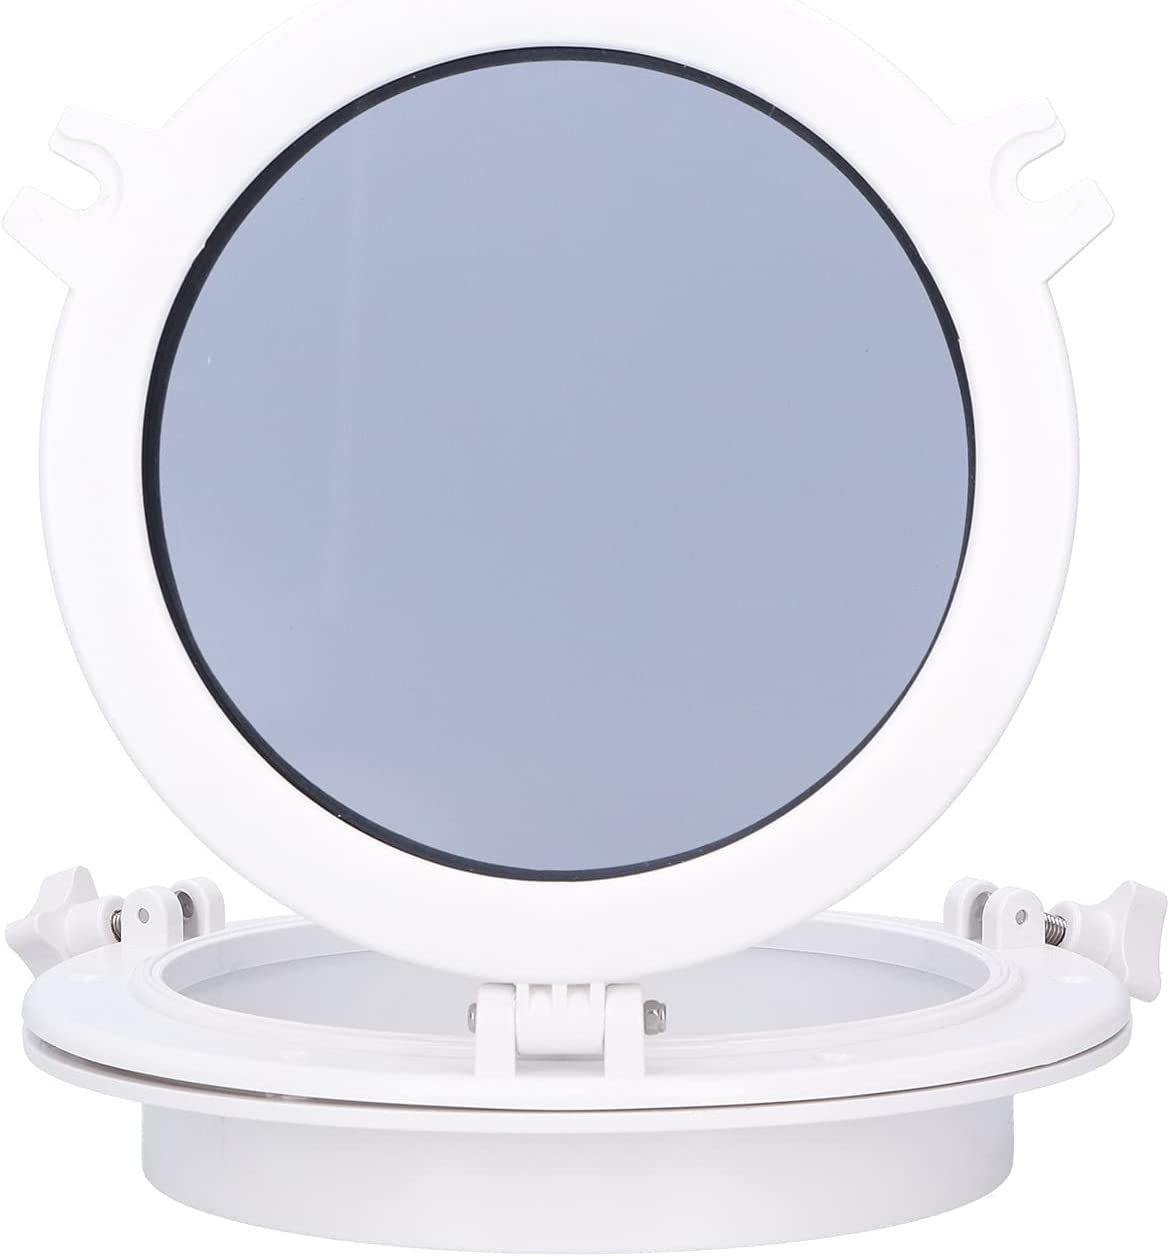 Fydun White Round Portlight Tempered Y Window Glass Opening Max Popular overseas 46% OFF Boat